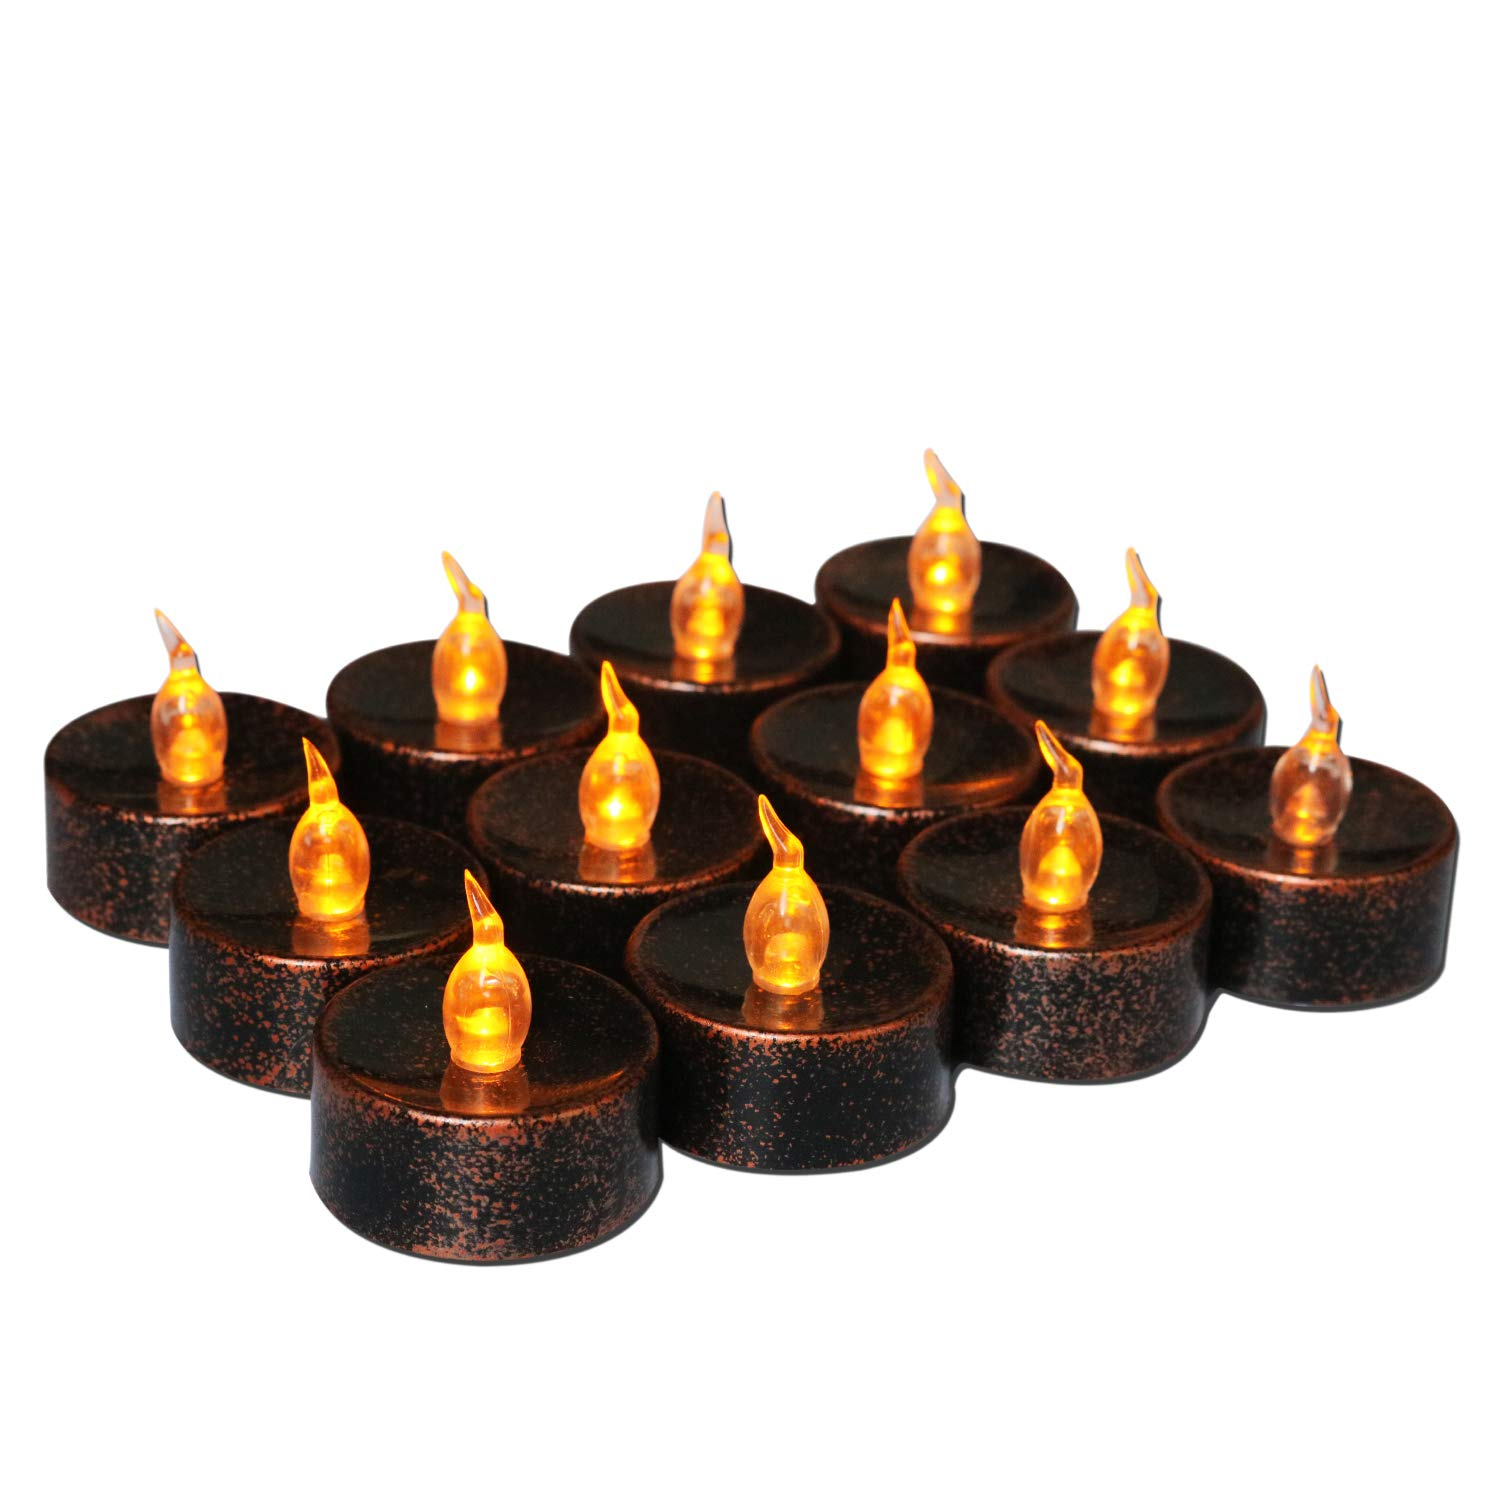 Youngerbaby Copper Tea Light Battery Operated Flickering Amber for Festival Wedding Party Decor, 1.4 Inch Flameless Tea Lights Vintage Tealights Led Candles for Holiday –12 Pack